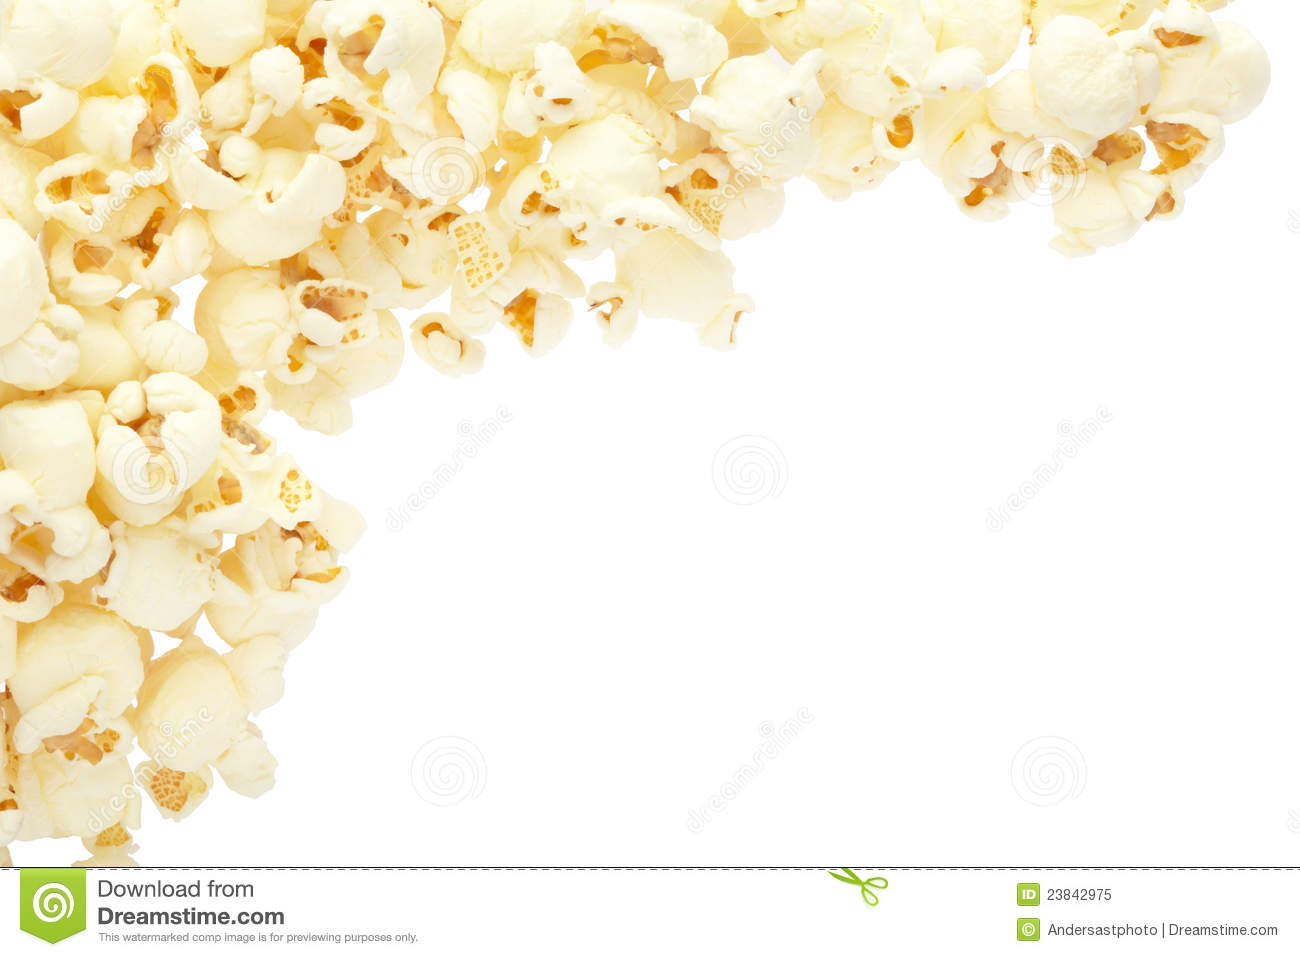 Popcorn border isolated on white, clipping path included.